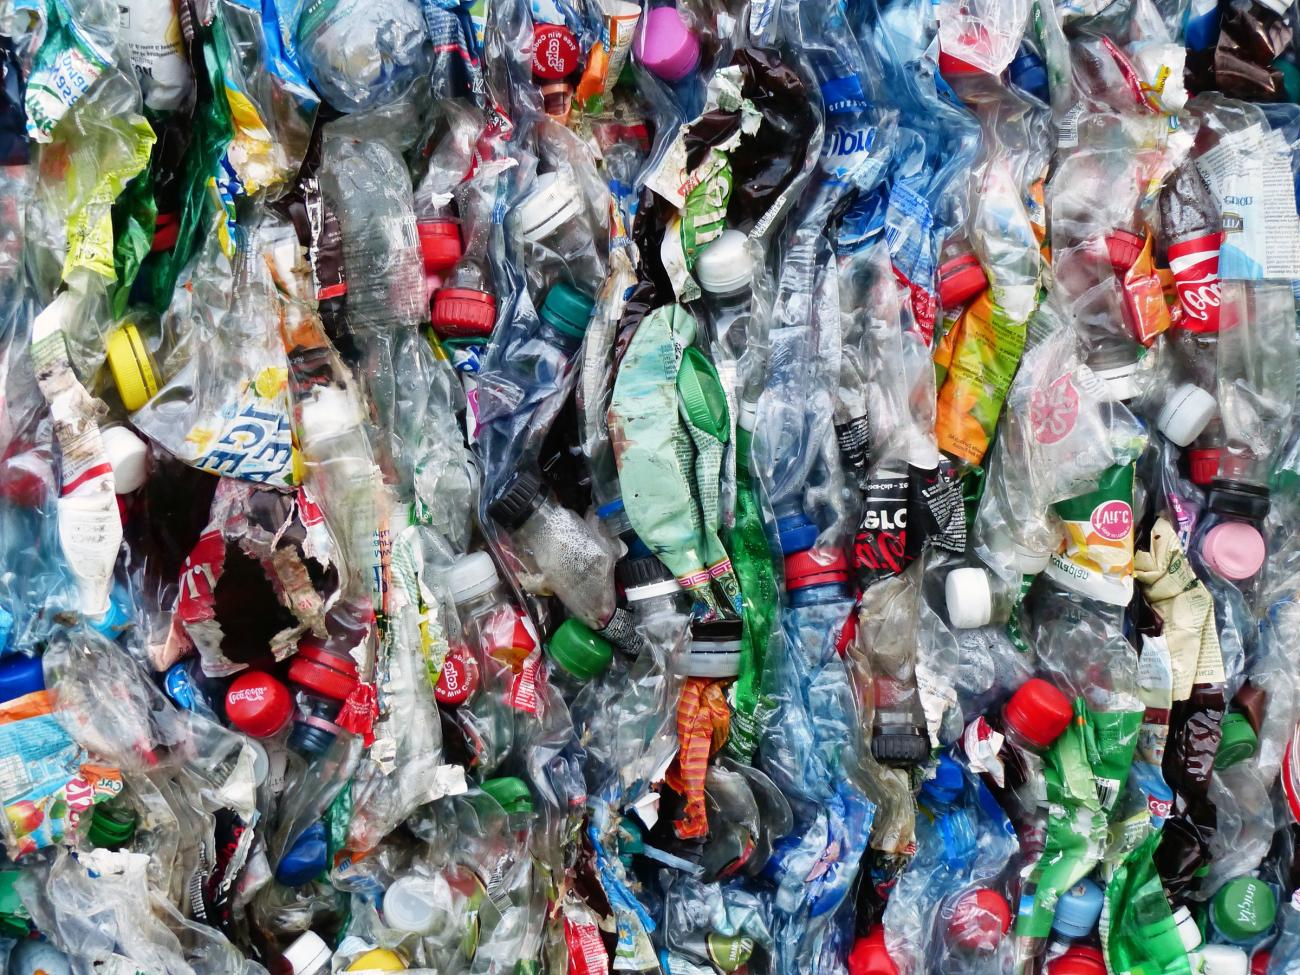 stock image, plastic waste